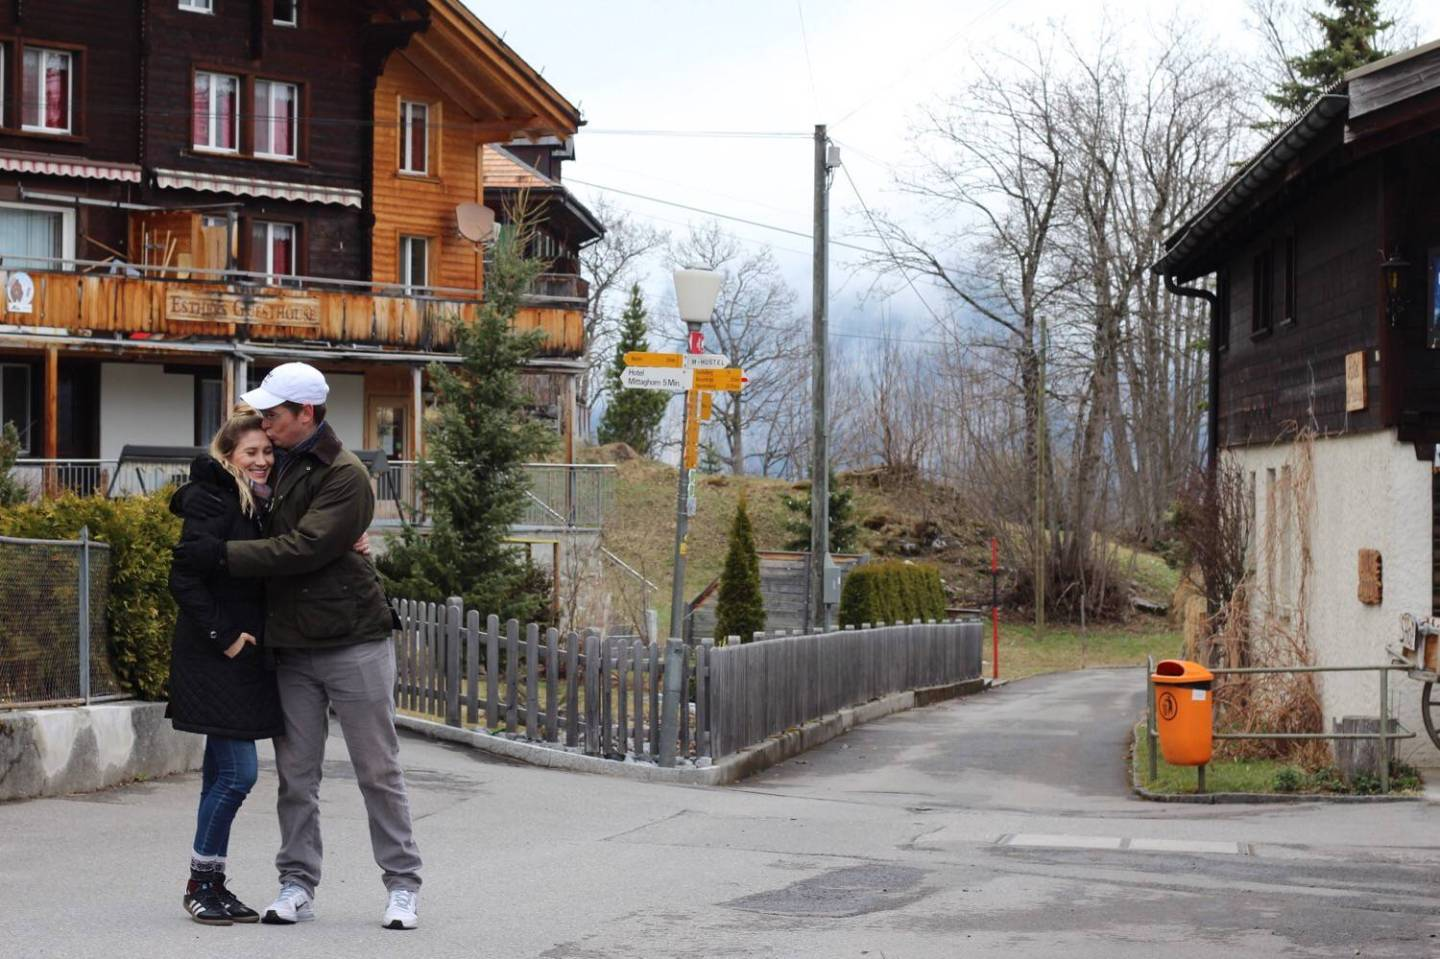 Couple Travel in Swiss Alpine Towns